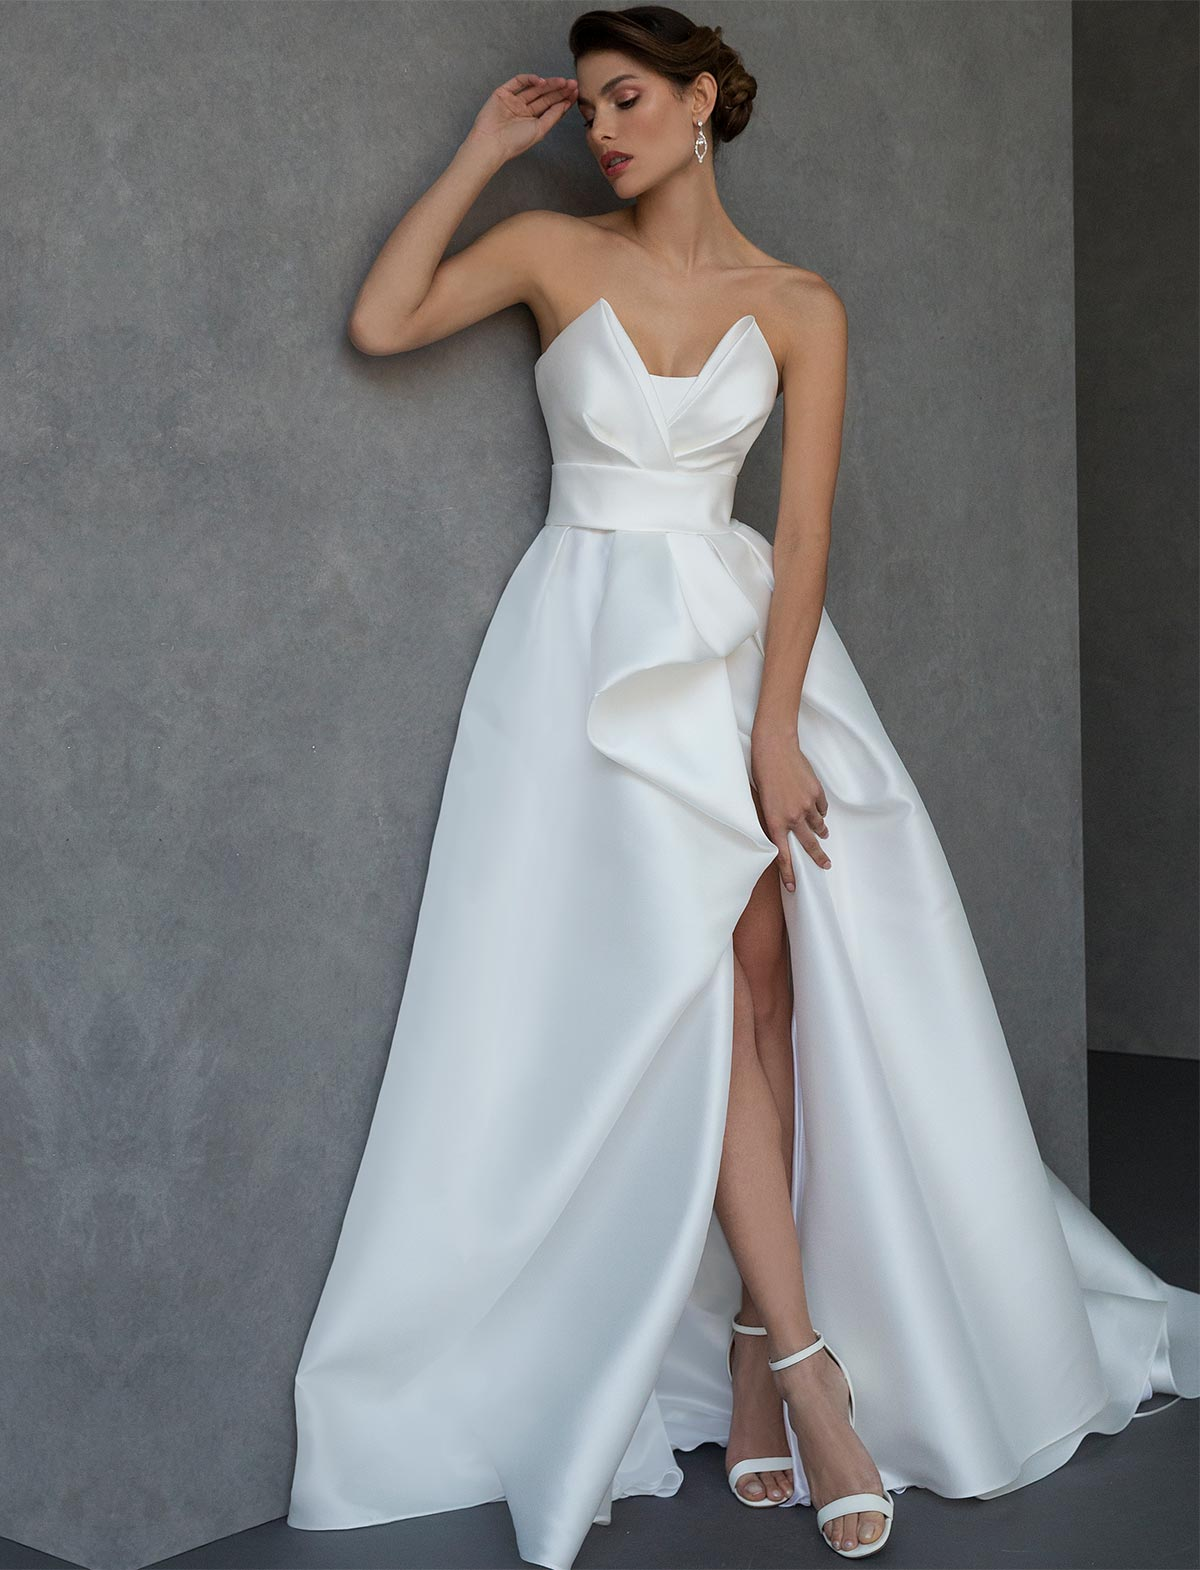 new style b5fed 0abb0 Valentini abiti da sposa rigorosamente Made in Italy ...